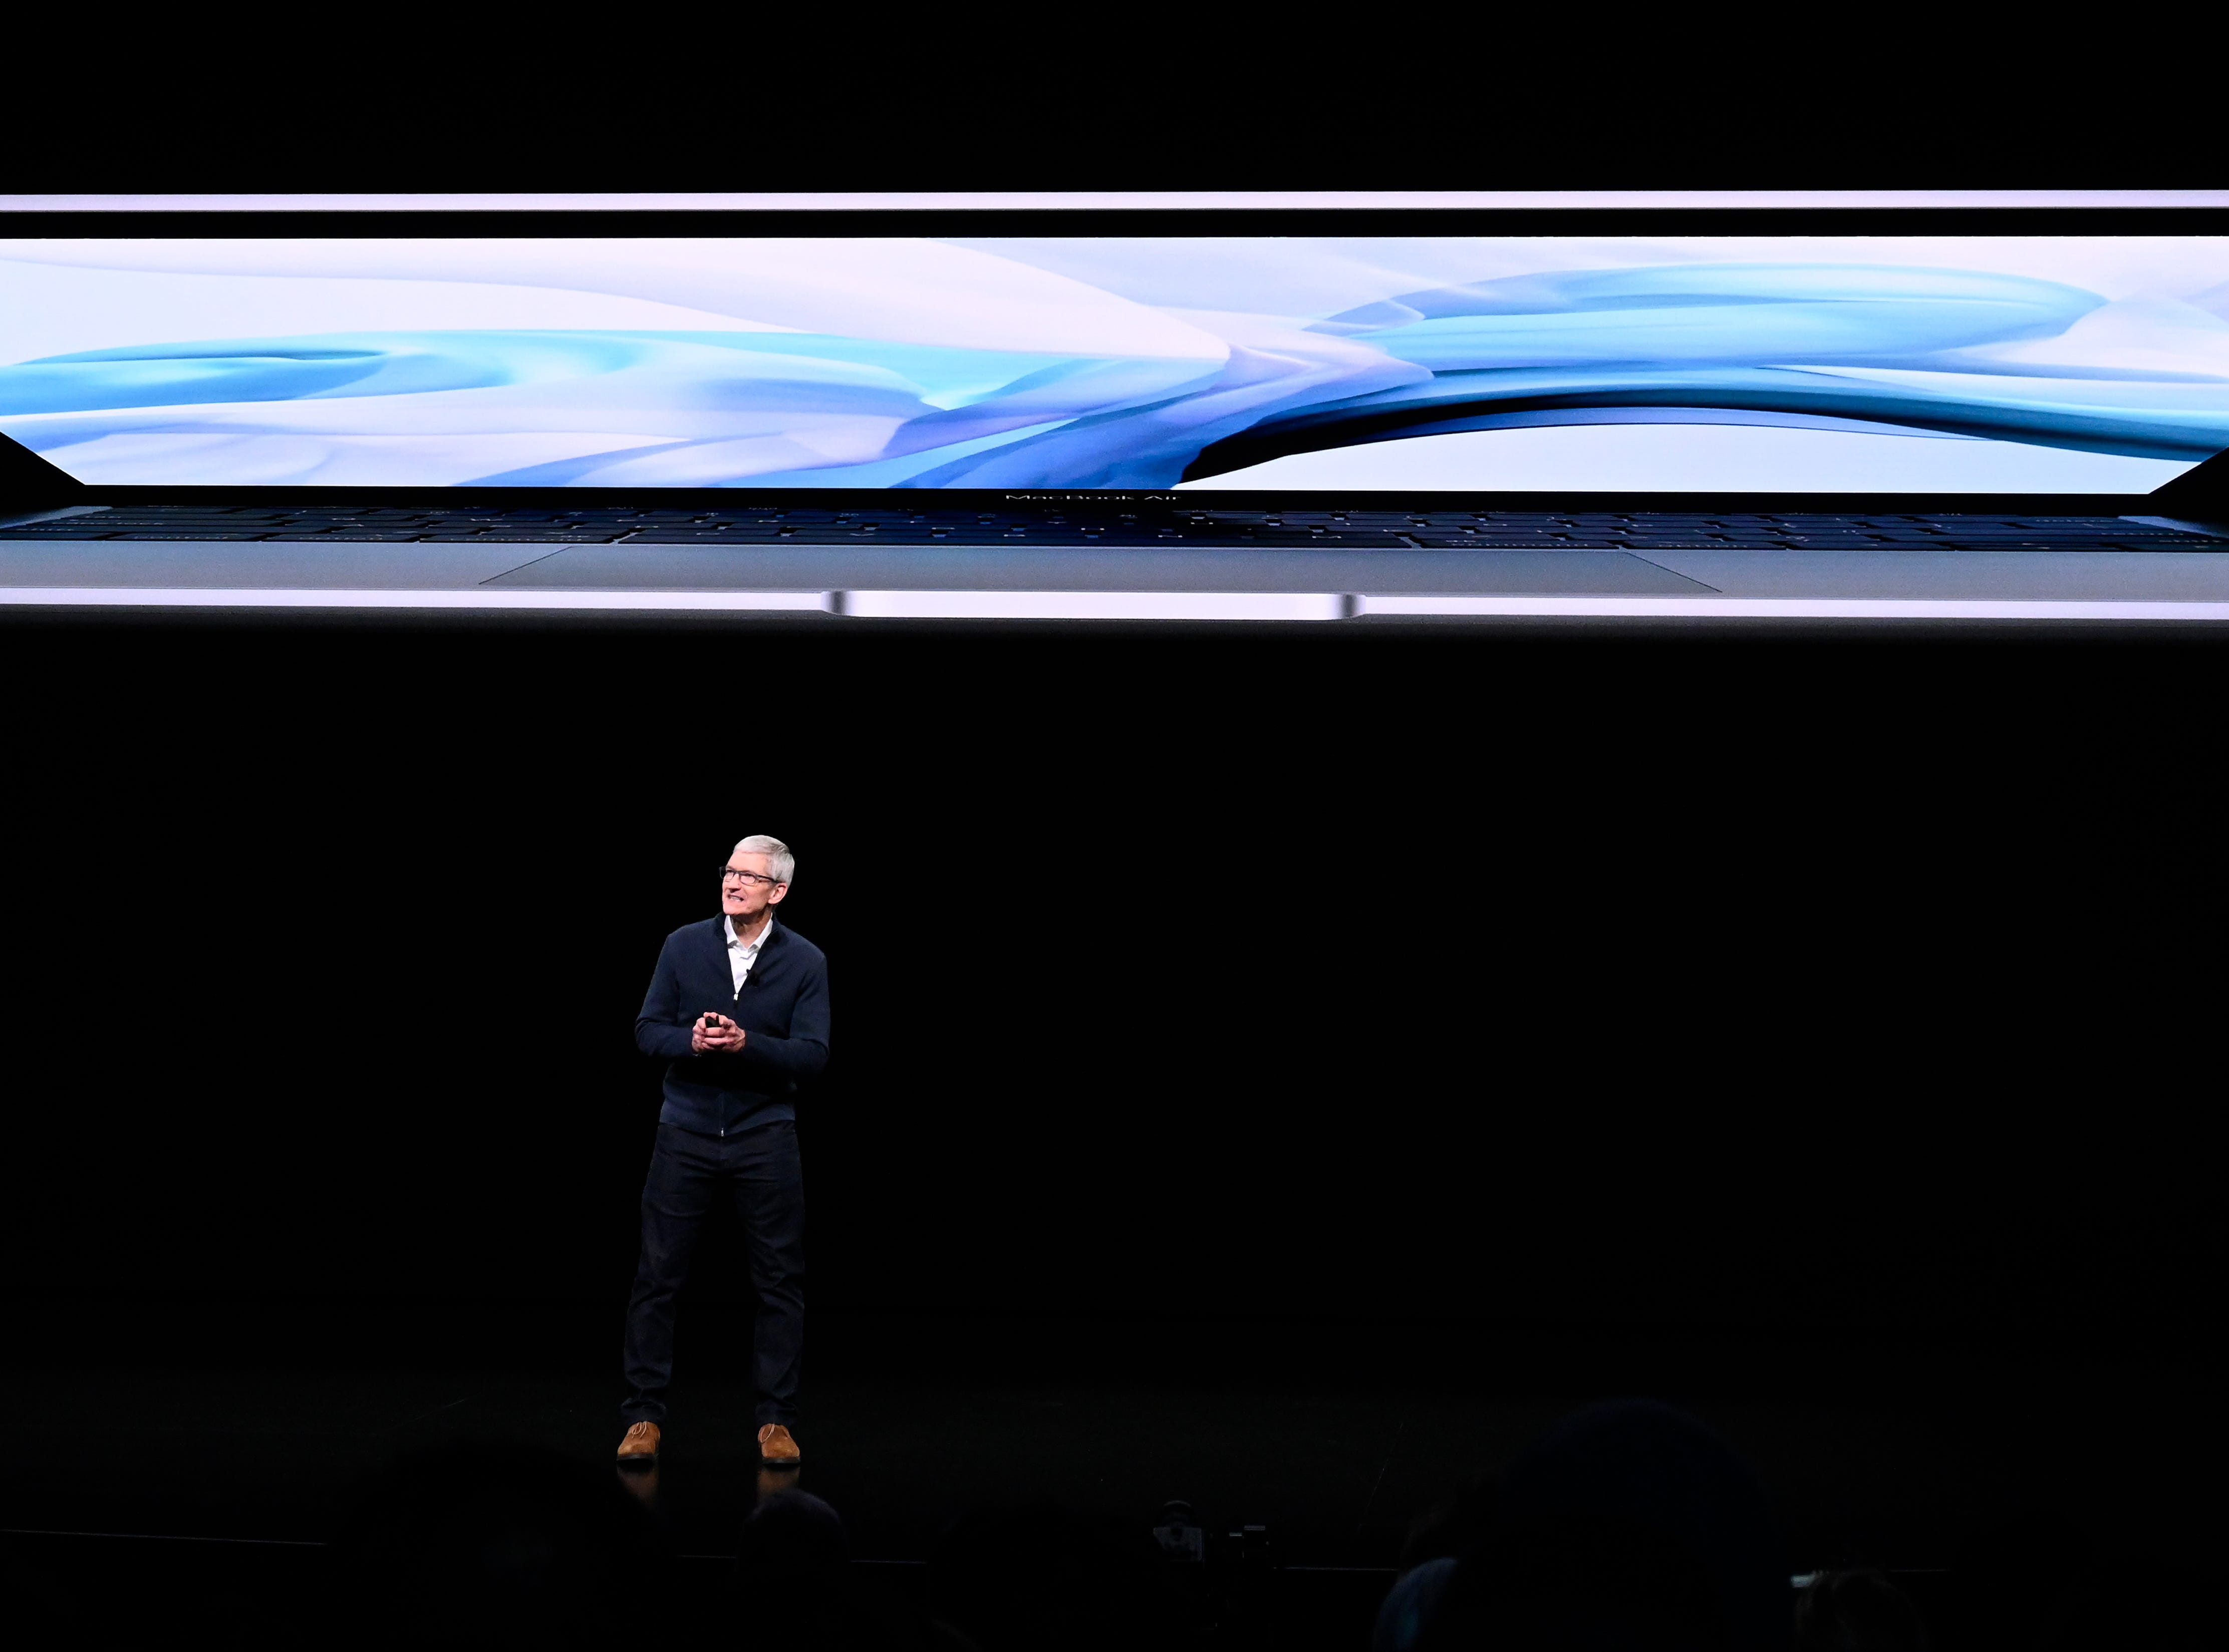 Apple CEO Tim Cook speaks during an Apple special event at the Howard Gilman Opera House at the Brooklyn Academy of Music in New York, Tuesday, Oct. 30, 2018.